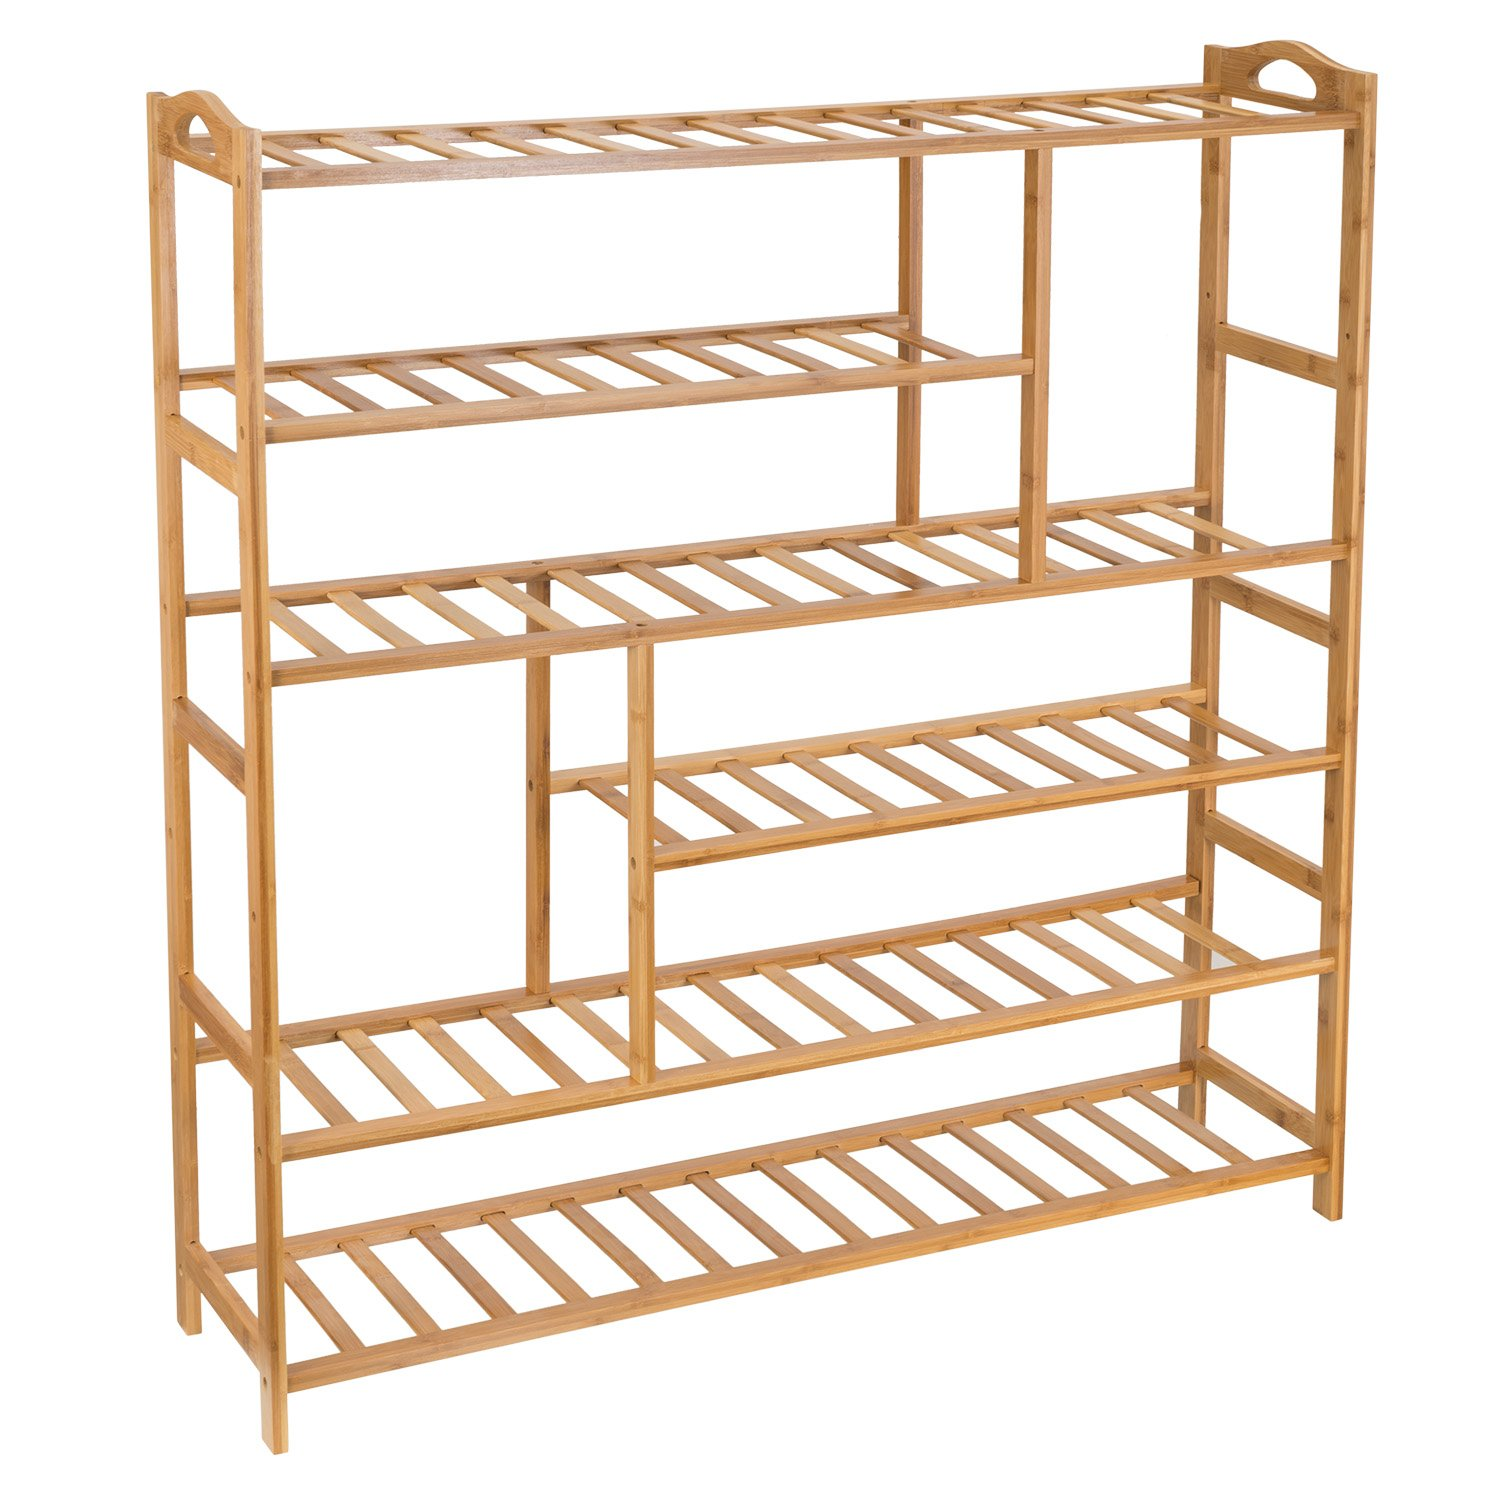 Ollieroo Bamboo Shoe Rack 6-Tier Entryway Shoe Shelf Storage Organizer Free Standing Shelves by Ollieroo